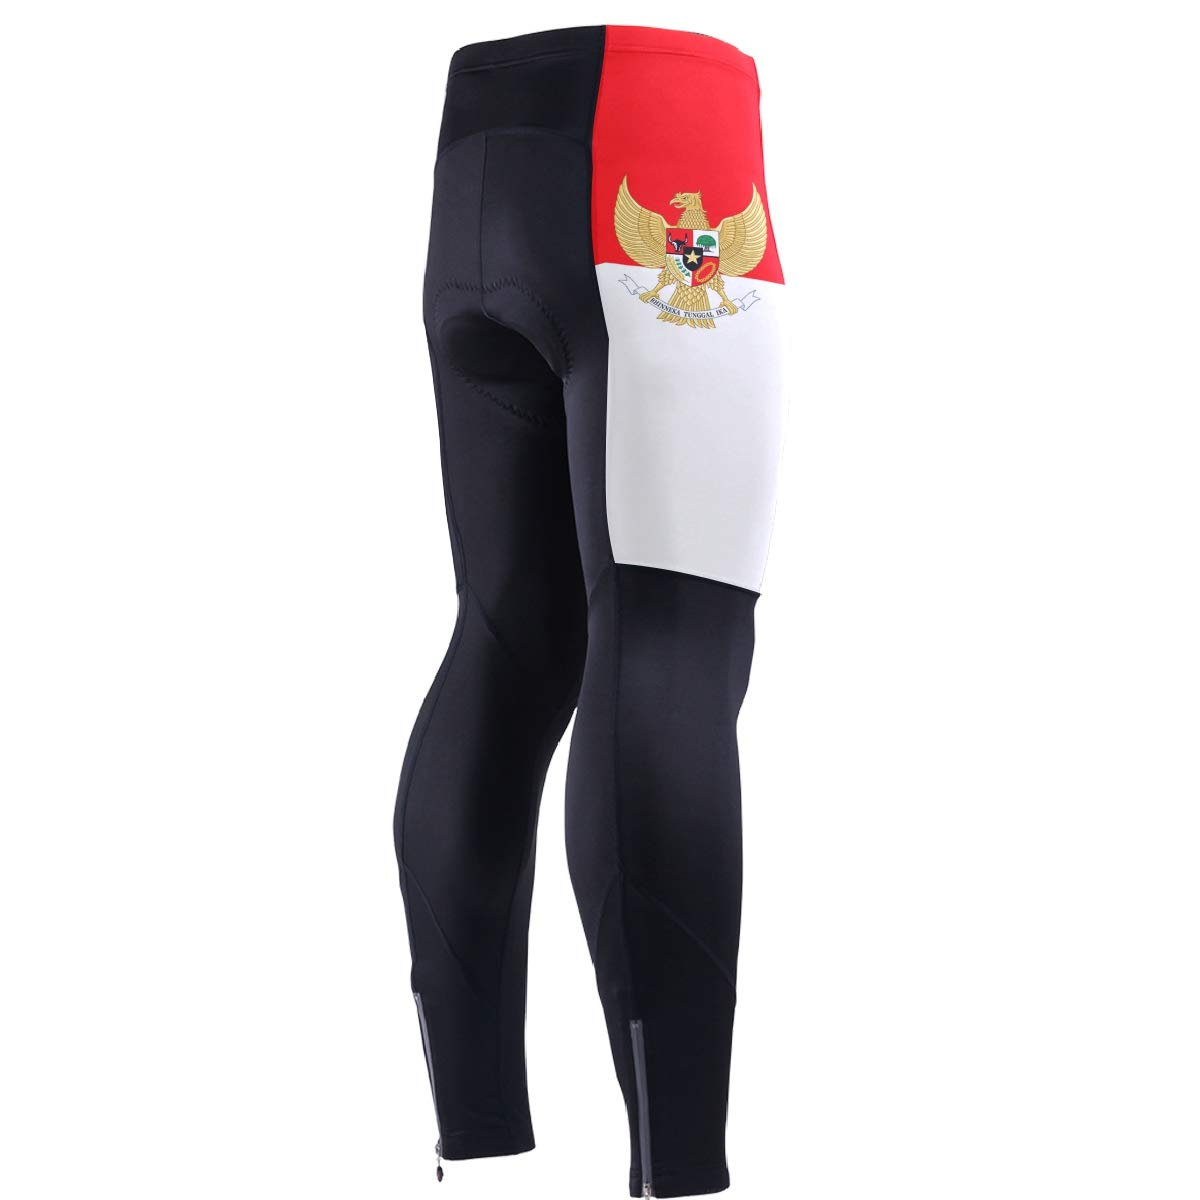 Men's Cycling Jersey Long Sleeve with 3 Rear Pockets Pants Indonesia Flag National Emblem by CHINEIN